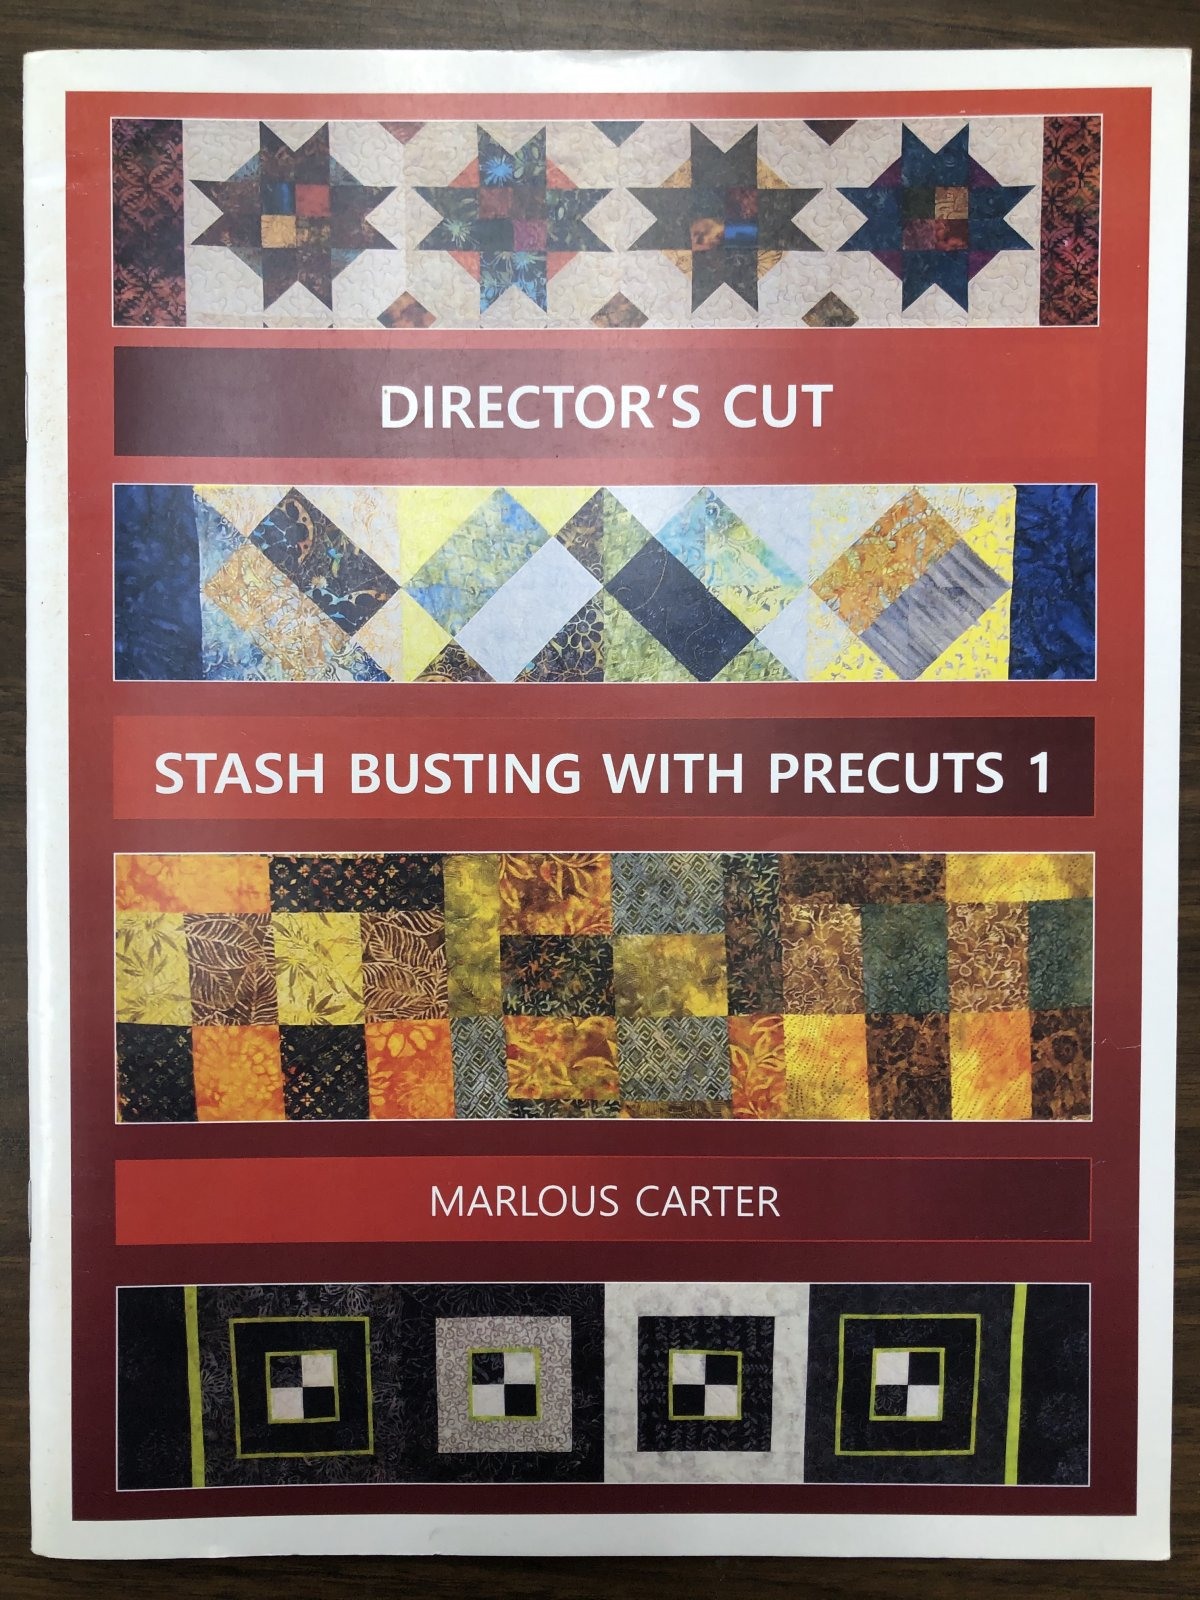 Director's Cut Stash Busting with Precuts 1